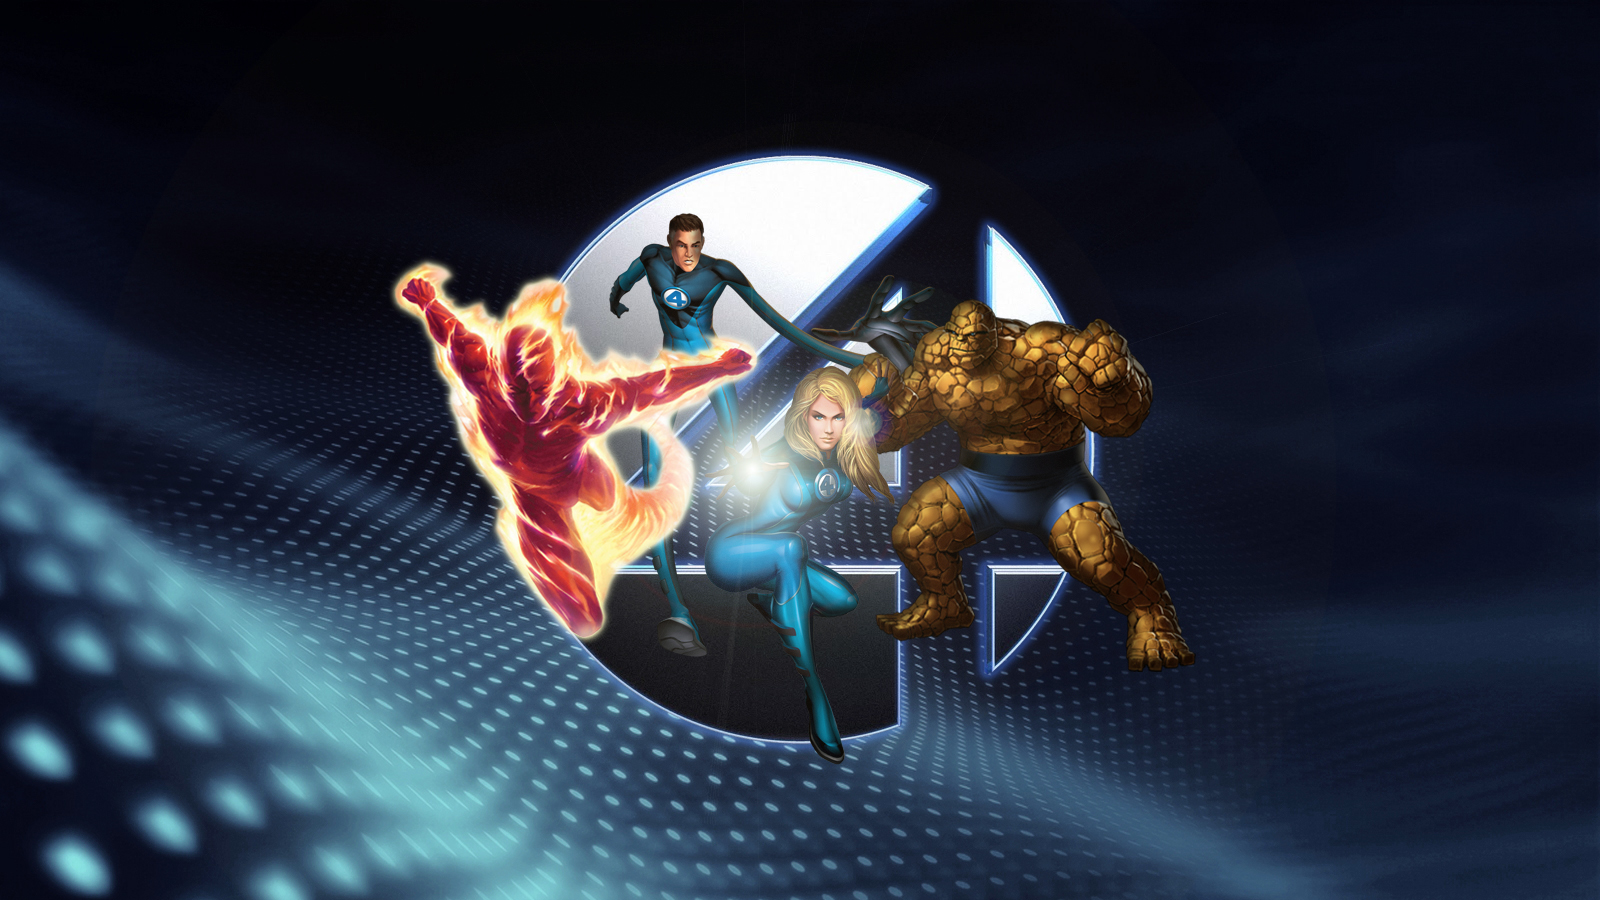 fantastic four backgrounds hd free wallpaper